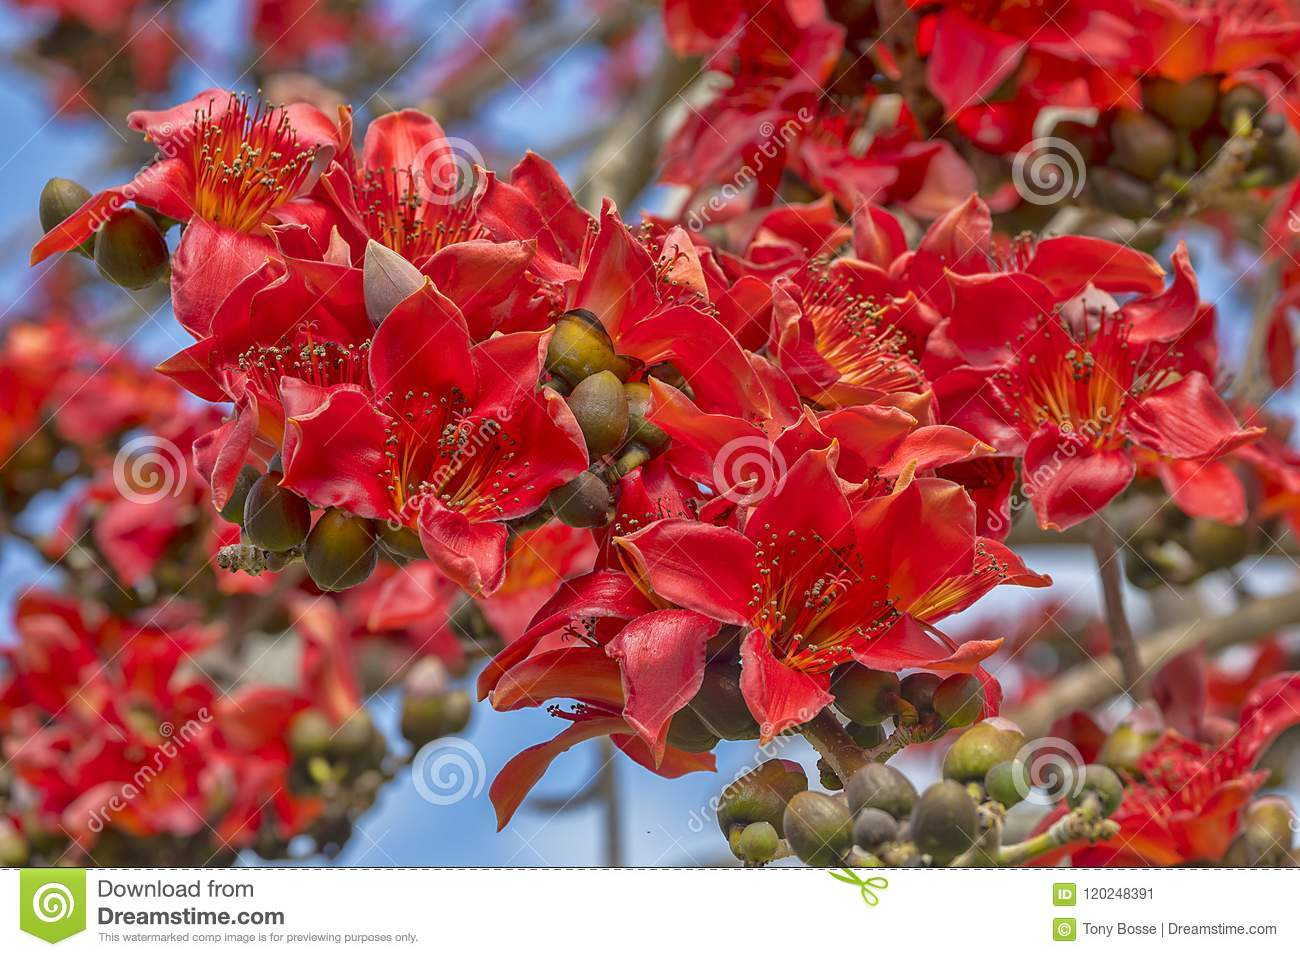 Kapok Tree Red Flower Cluster Stock Image - Image of floral